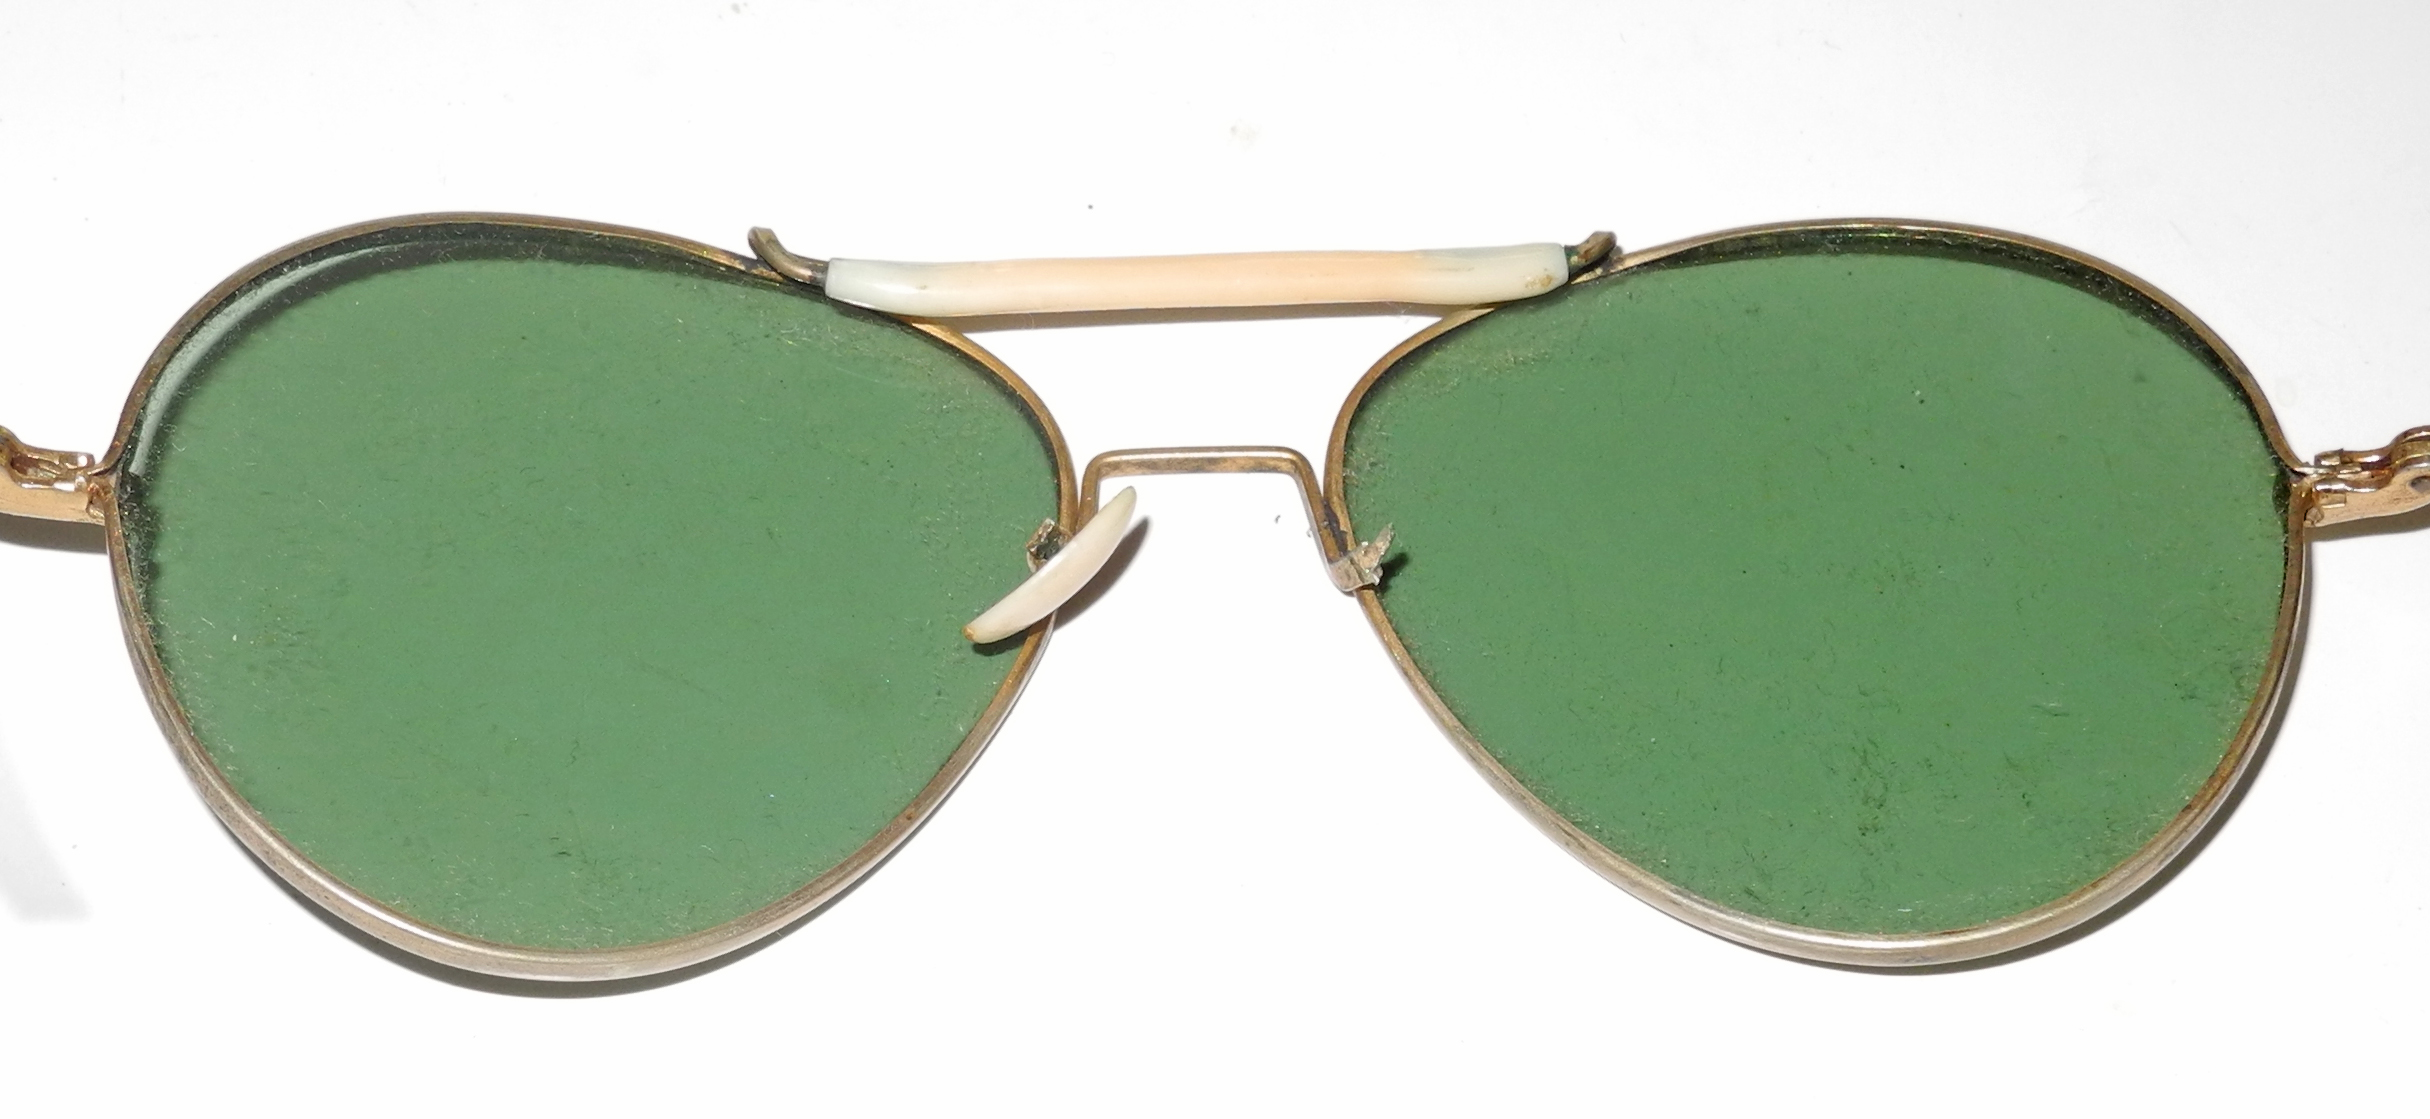 AAF Bausch and Lomb sunglasses